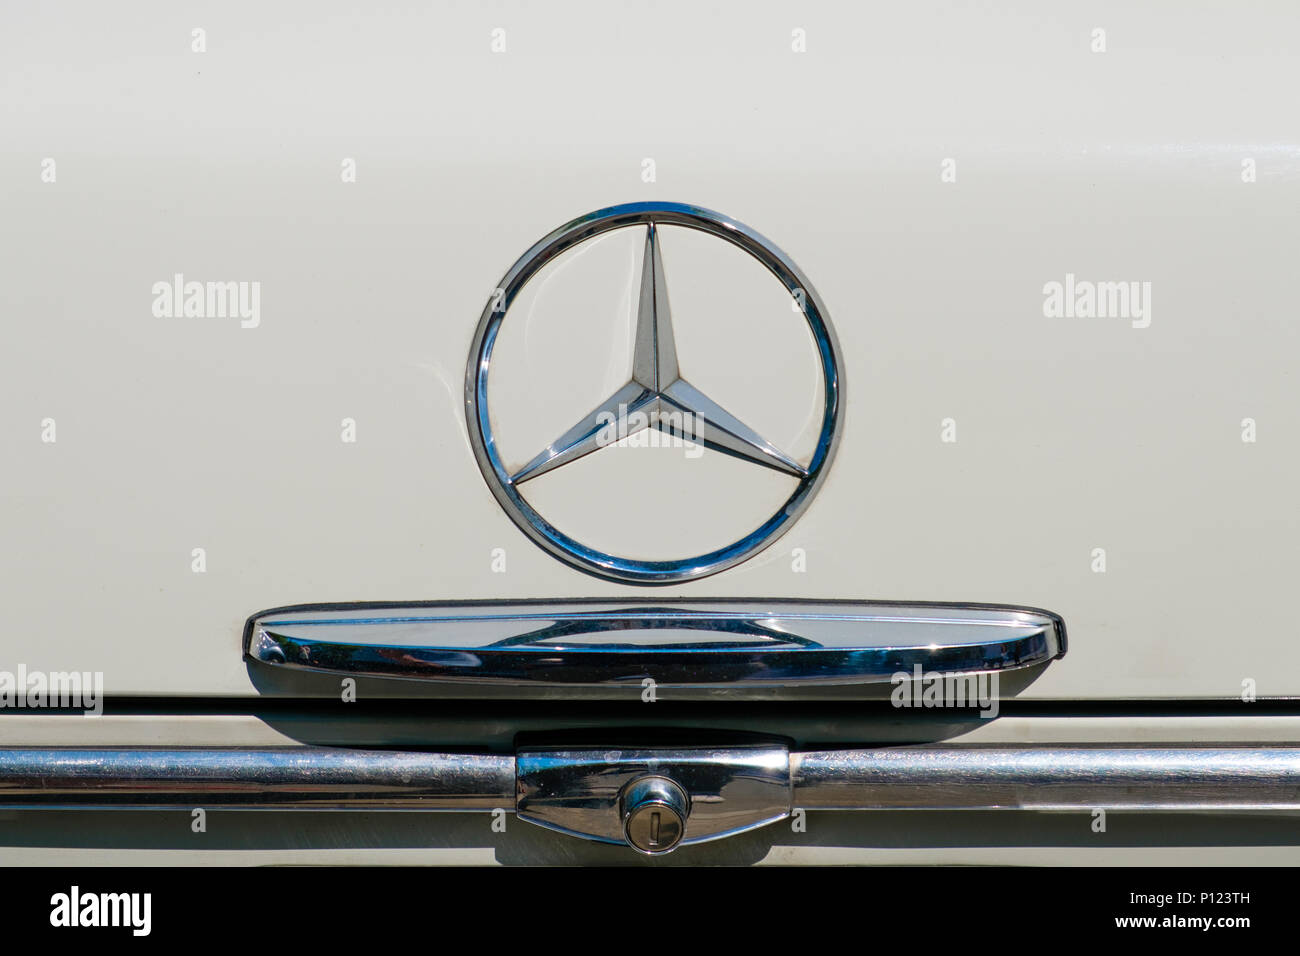 Berlin, Germany- june 09, 2018: Car design detail and  Mercedes Benz star   logo / emblem closeup on trunk of a oldtimer automobile - Stock Image